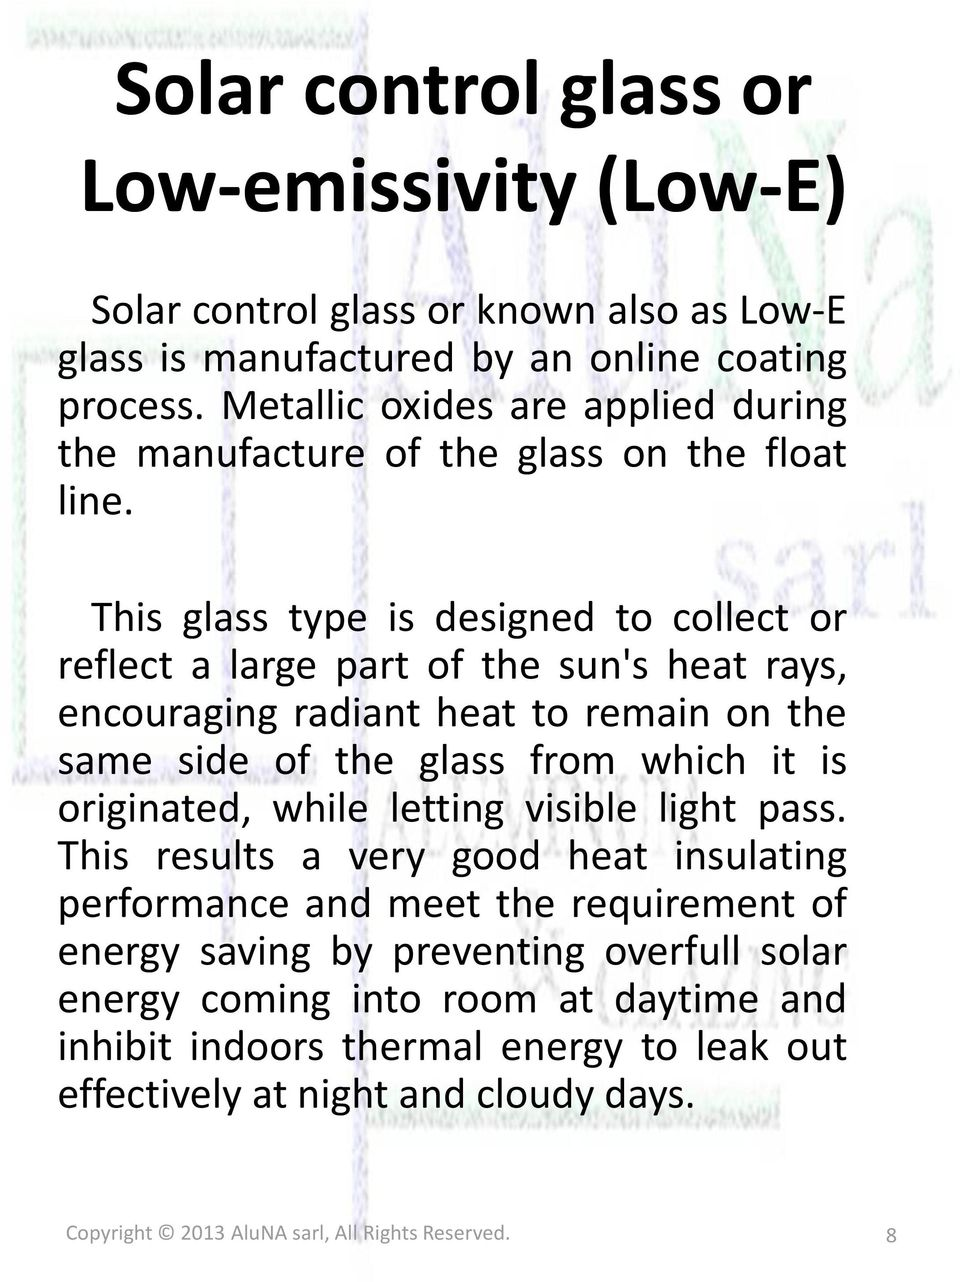 This glass type is designed to collect or reflect a large part of the sun's heat rays, encouraging radiant heat to remain on the same side of the glass from which it is